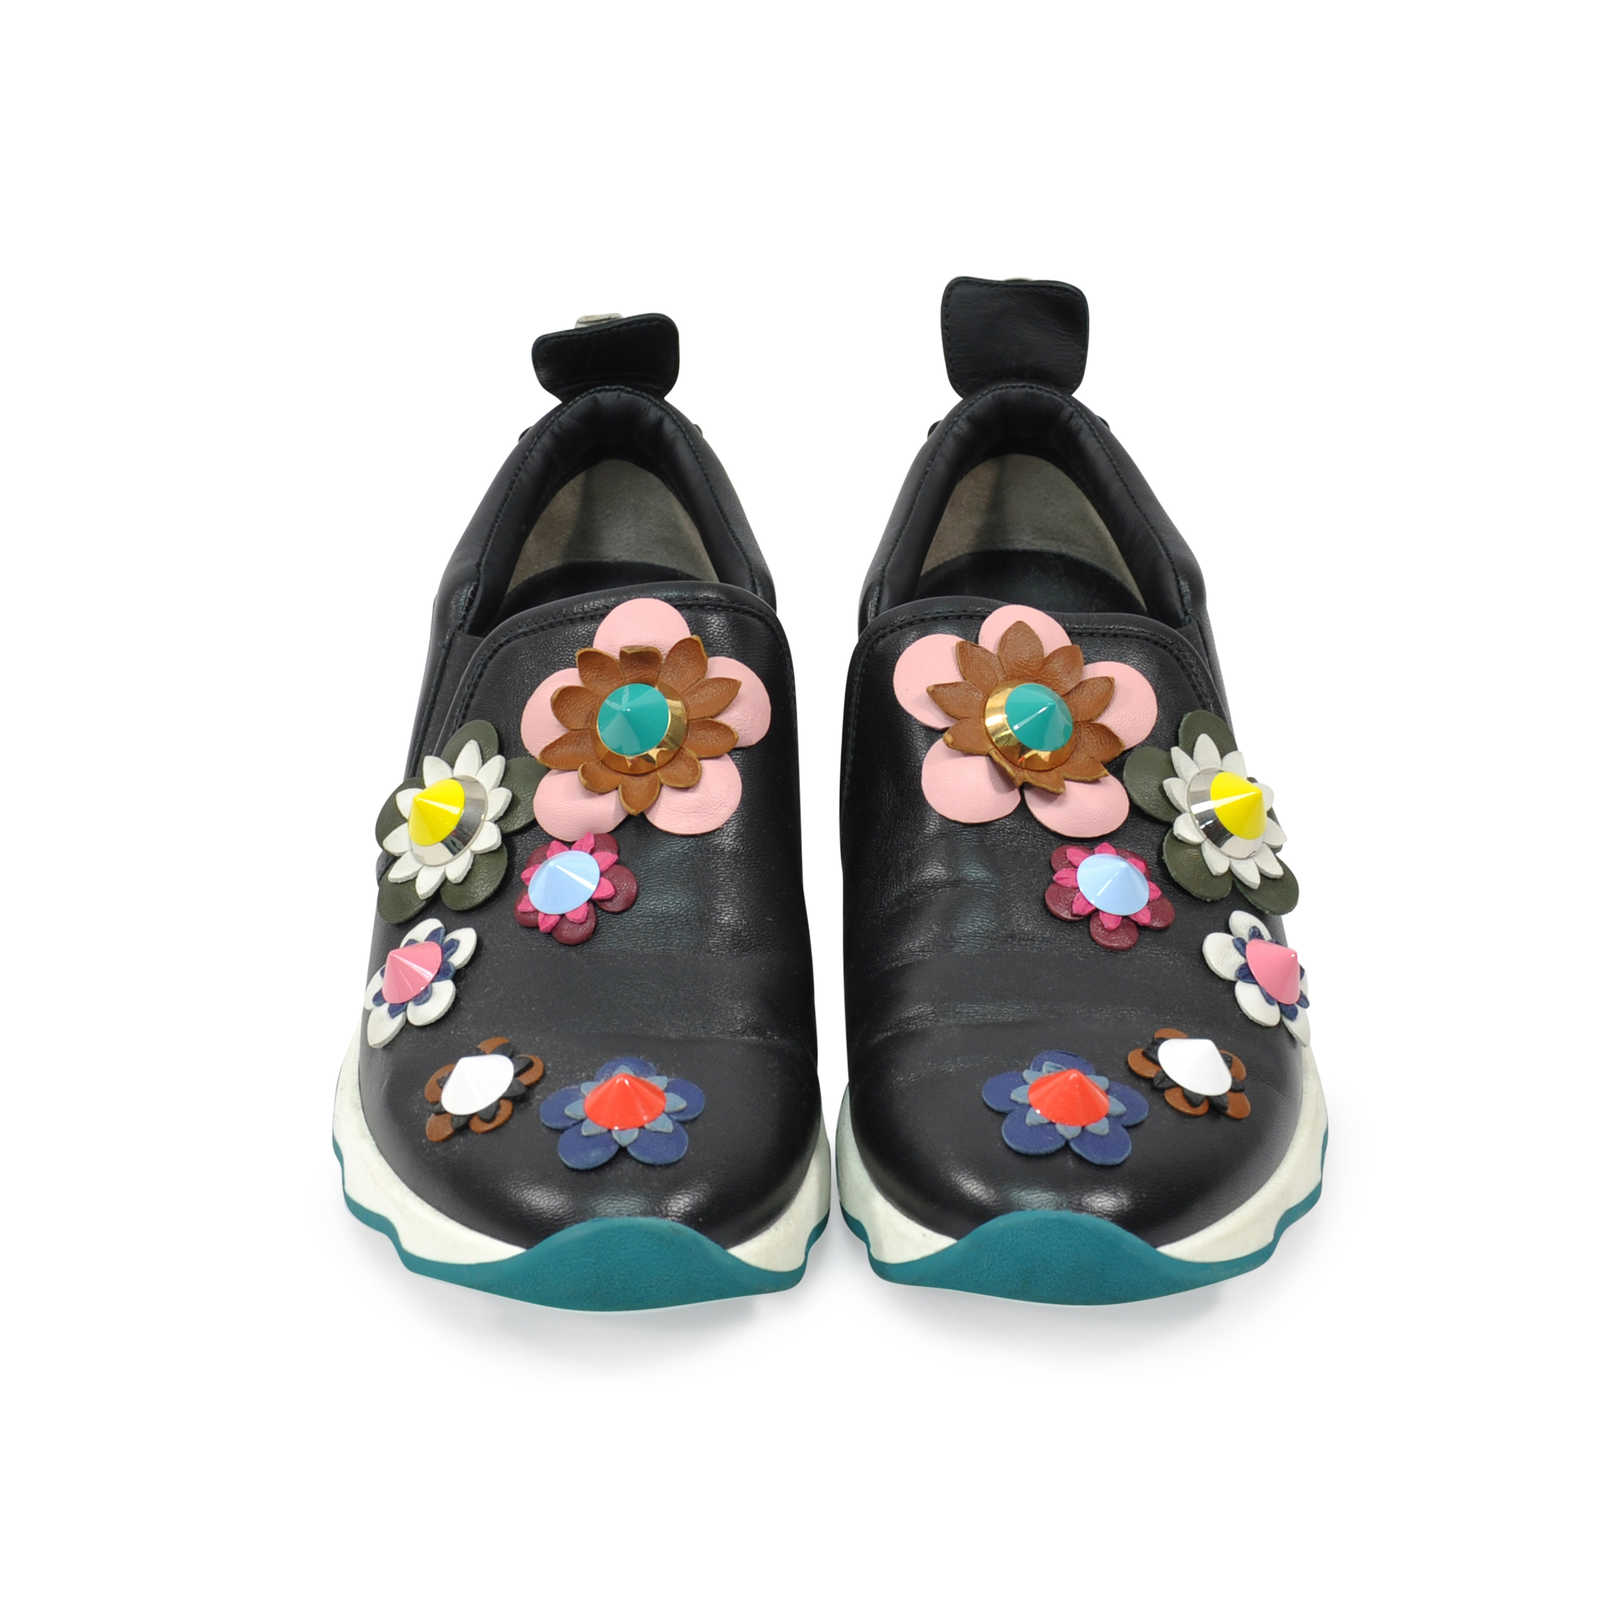 af0af1d19b0310 Authentic Second Hand Fendi Embellished Appliqué Slip On Sneakers  (PSS-200-00745) ...